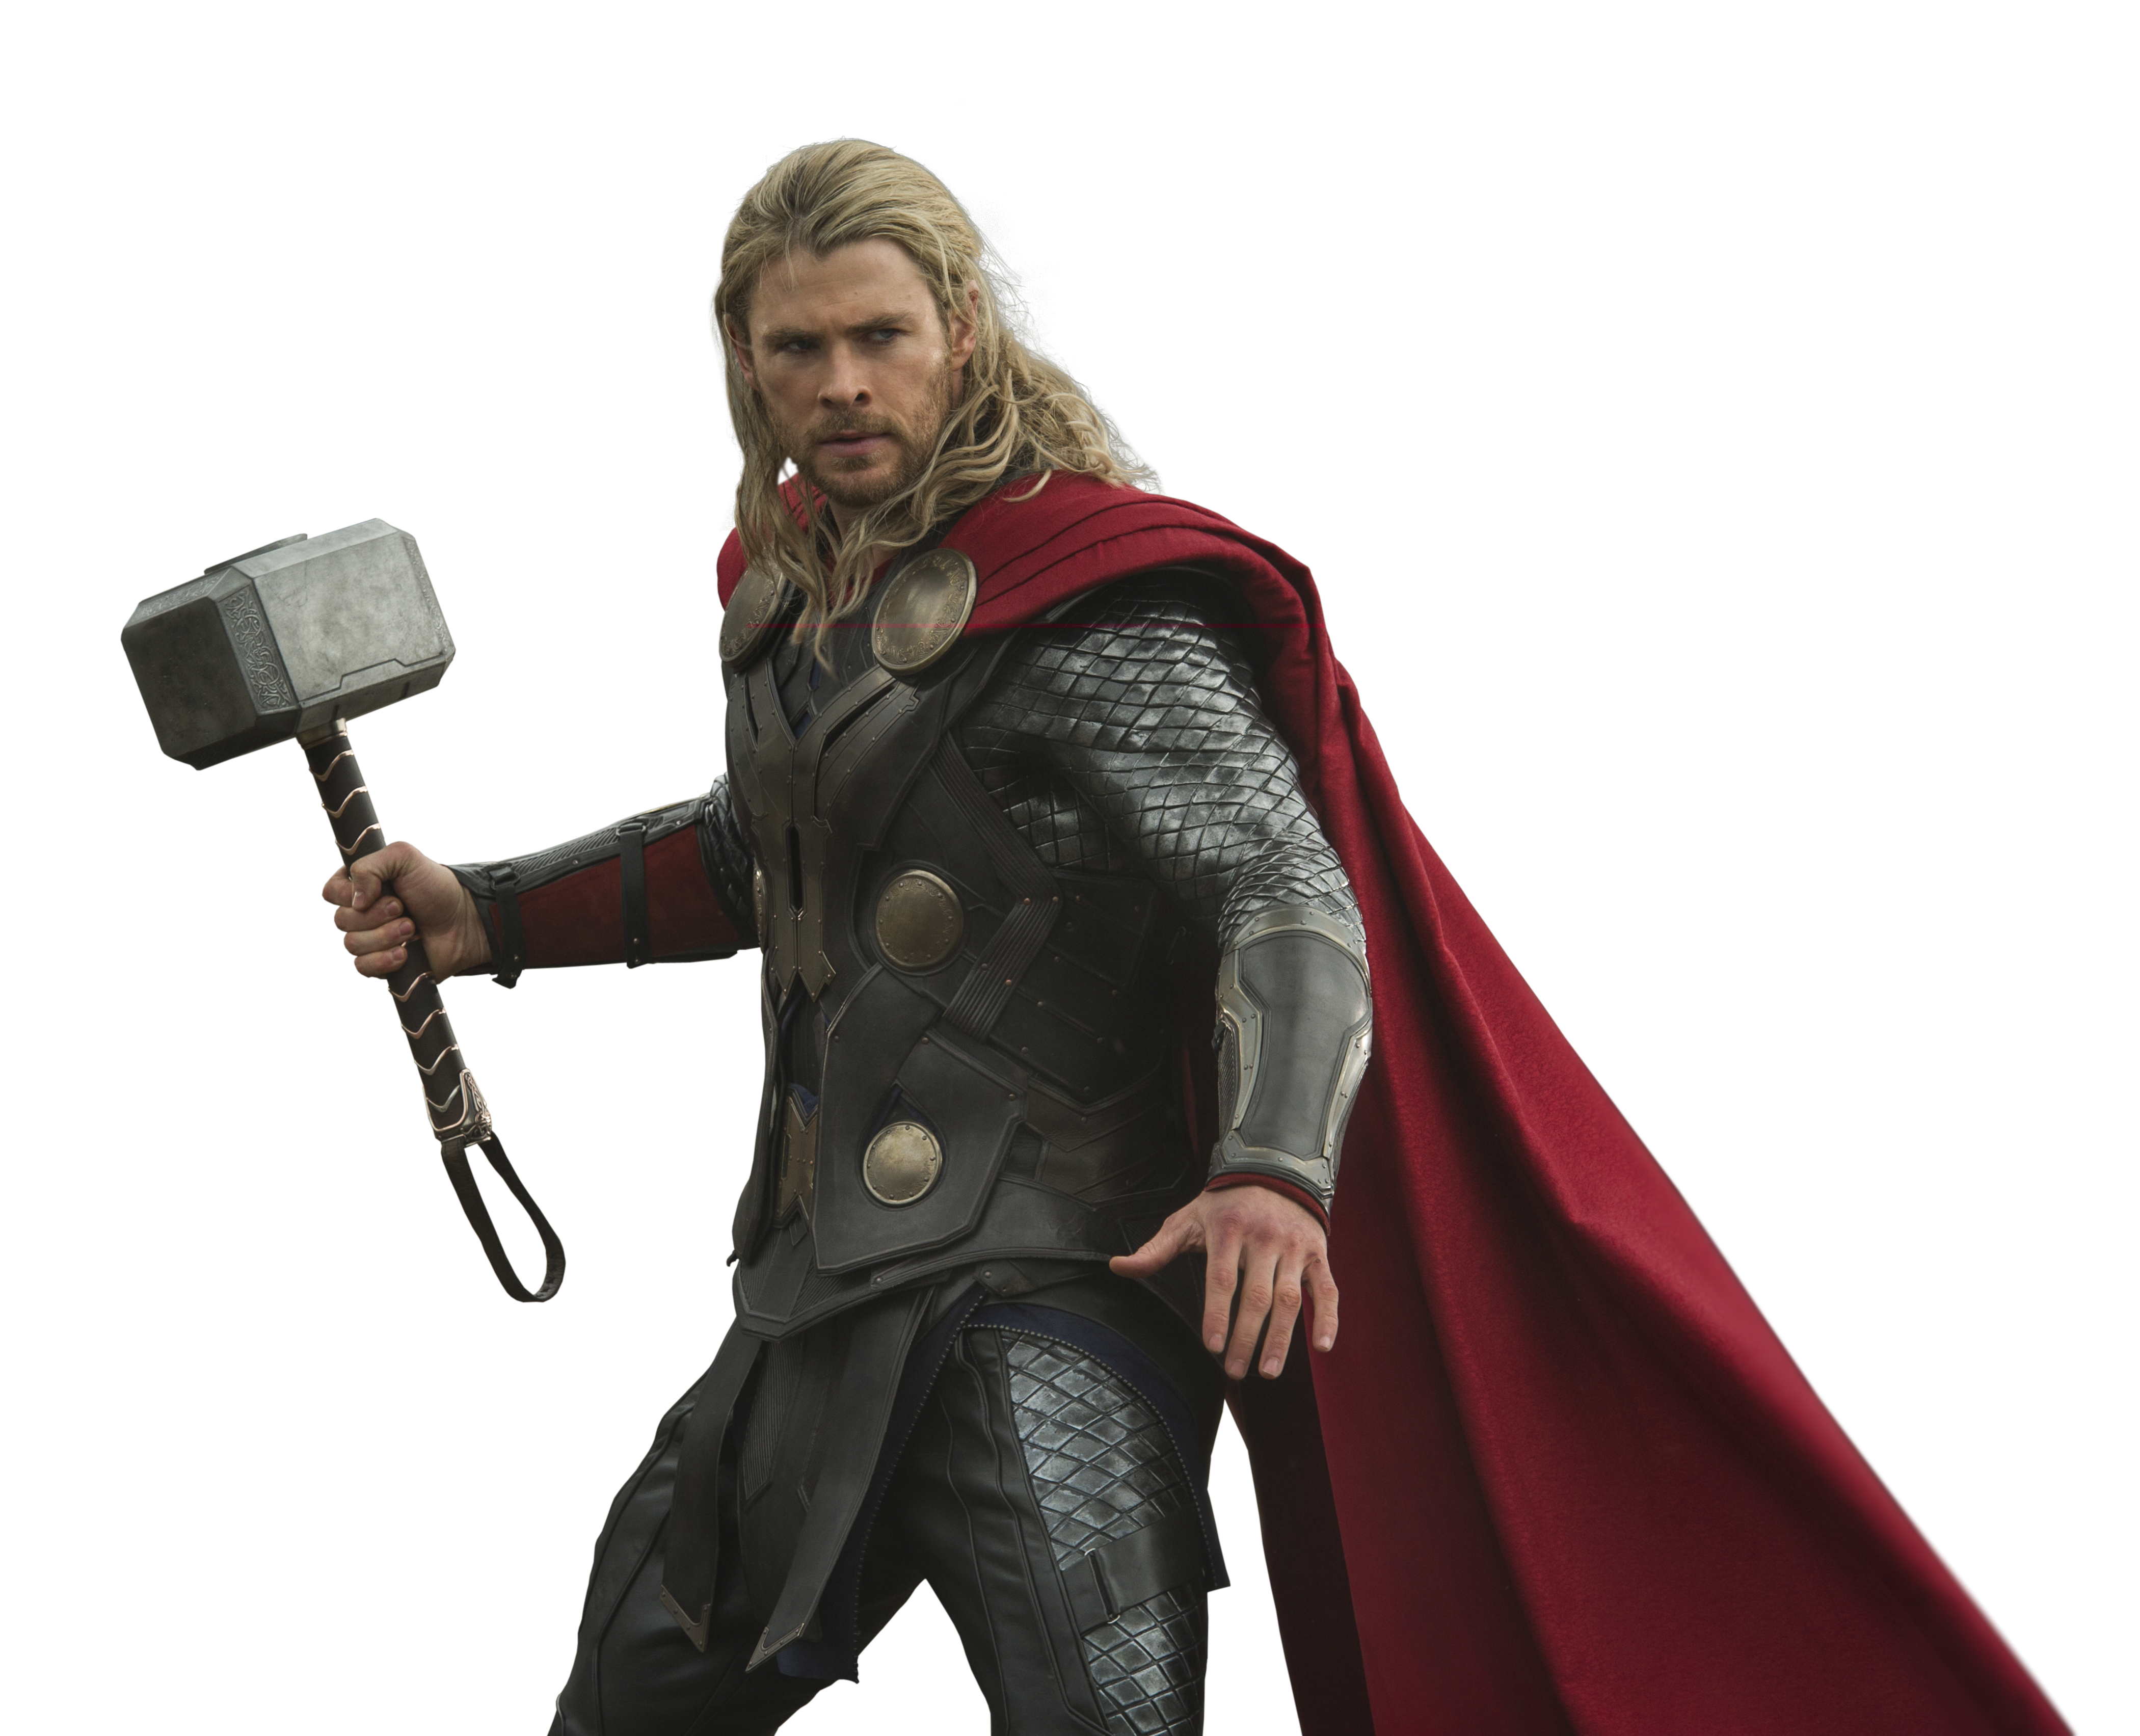 download thor picture hq png image freepngimg